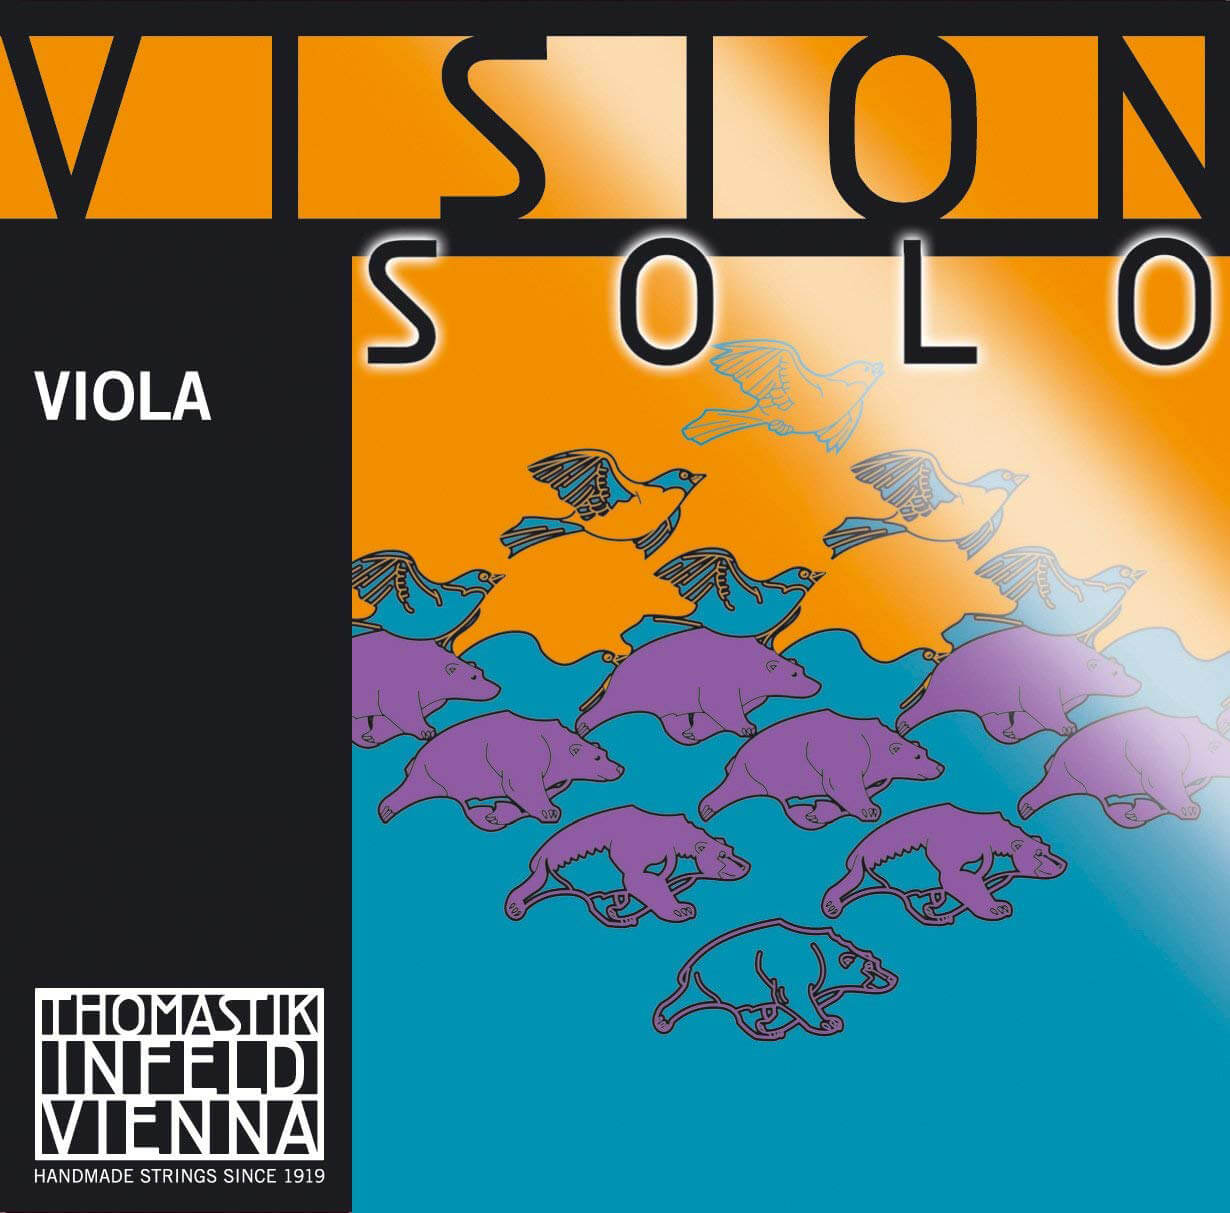 Thomastik Infeld Vision Solo Viola G Strings